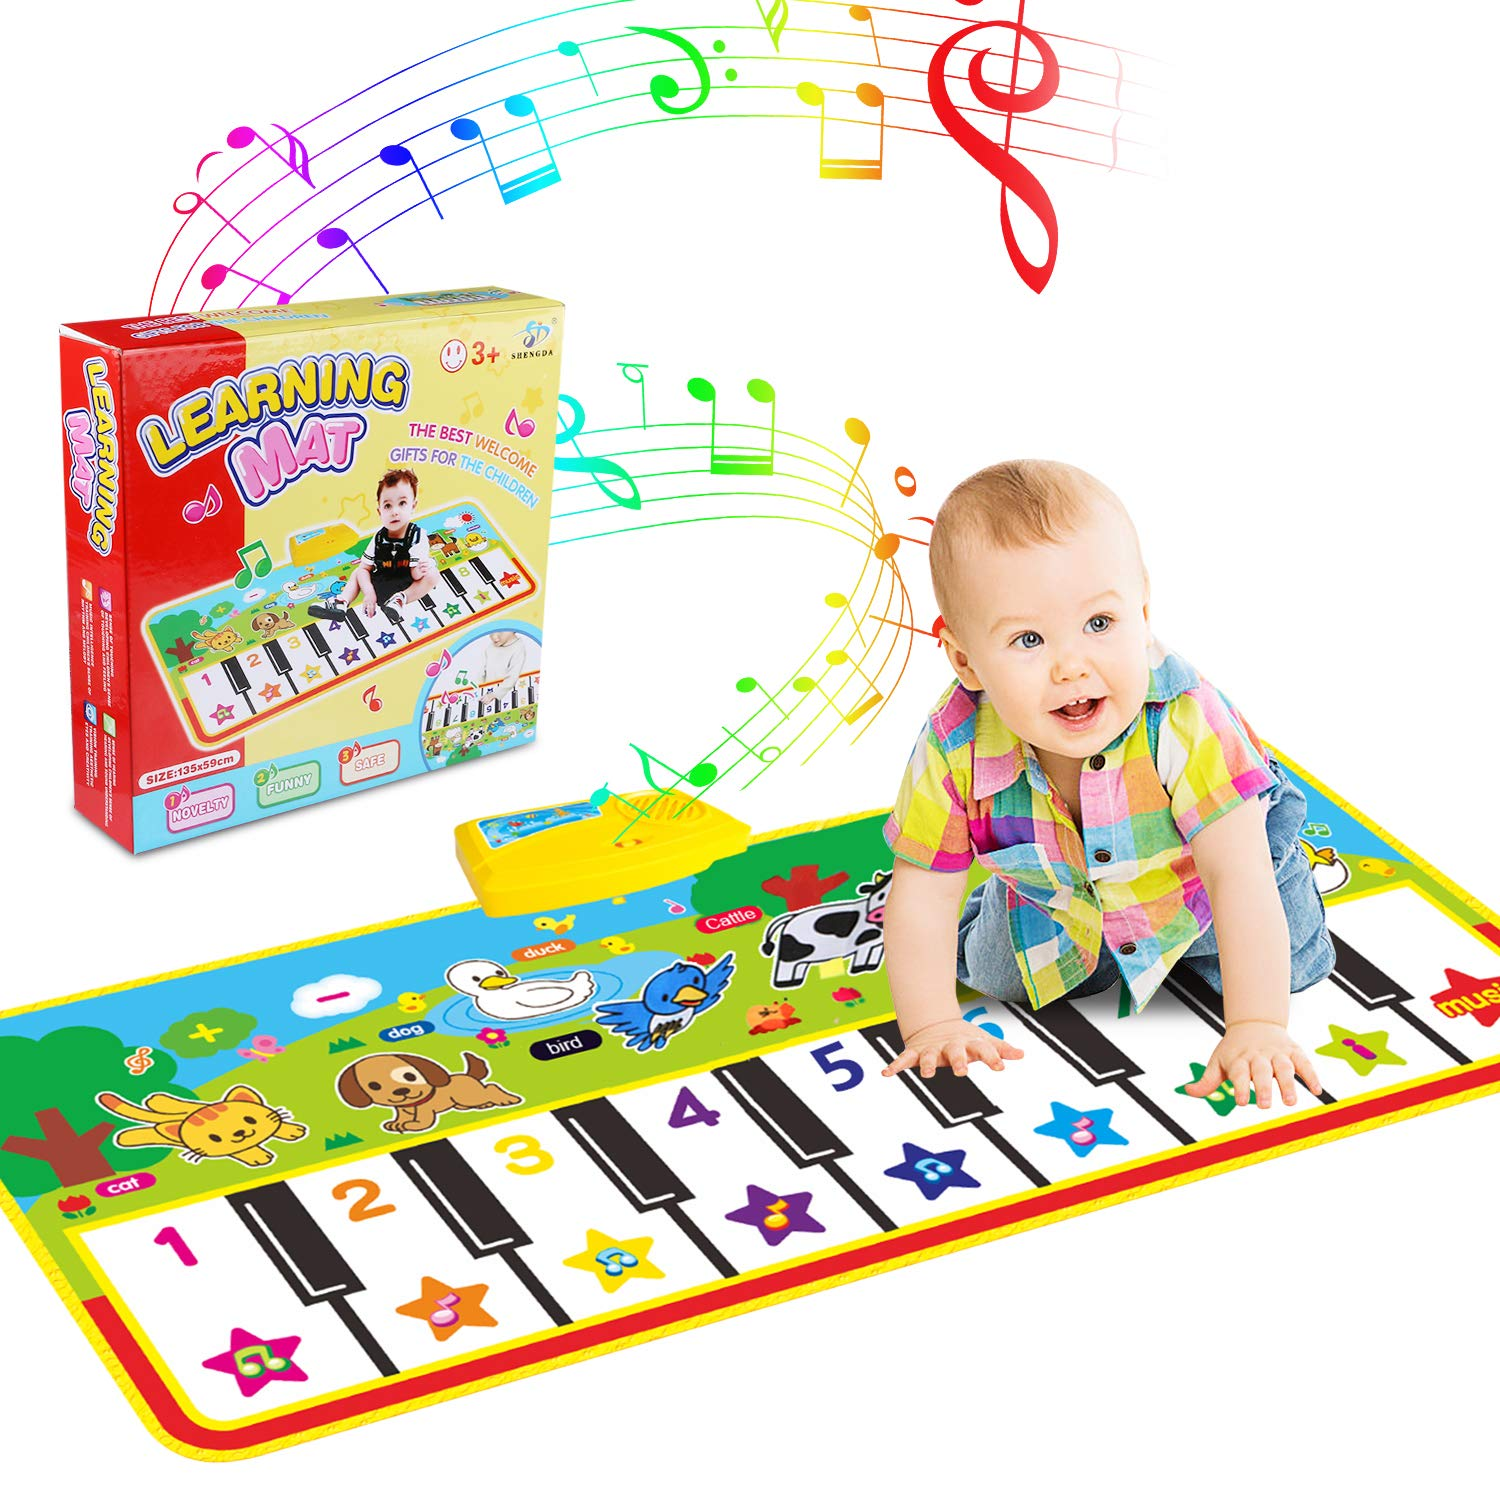 WOSTOO Piano Mat, Musical Piano Mat Keyboard Play Mat Portable Musical Blanket Instrument Toy with 8 Animal Sounds Dance Mat Educational Toy Gift for Kids Toddler Girls Boys by WOSTOO